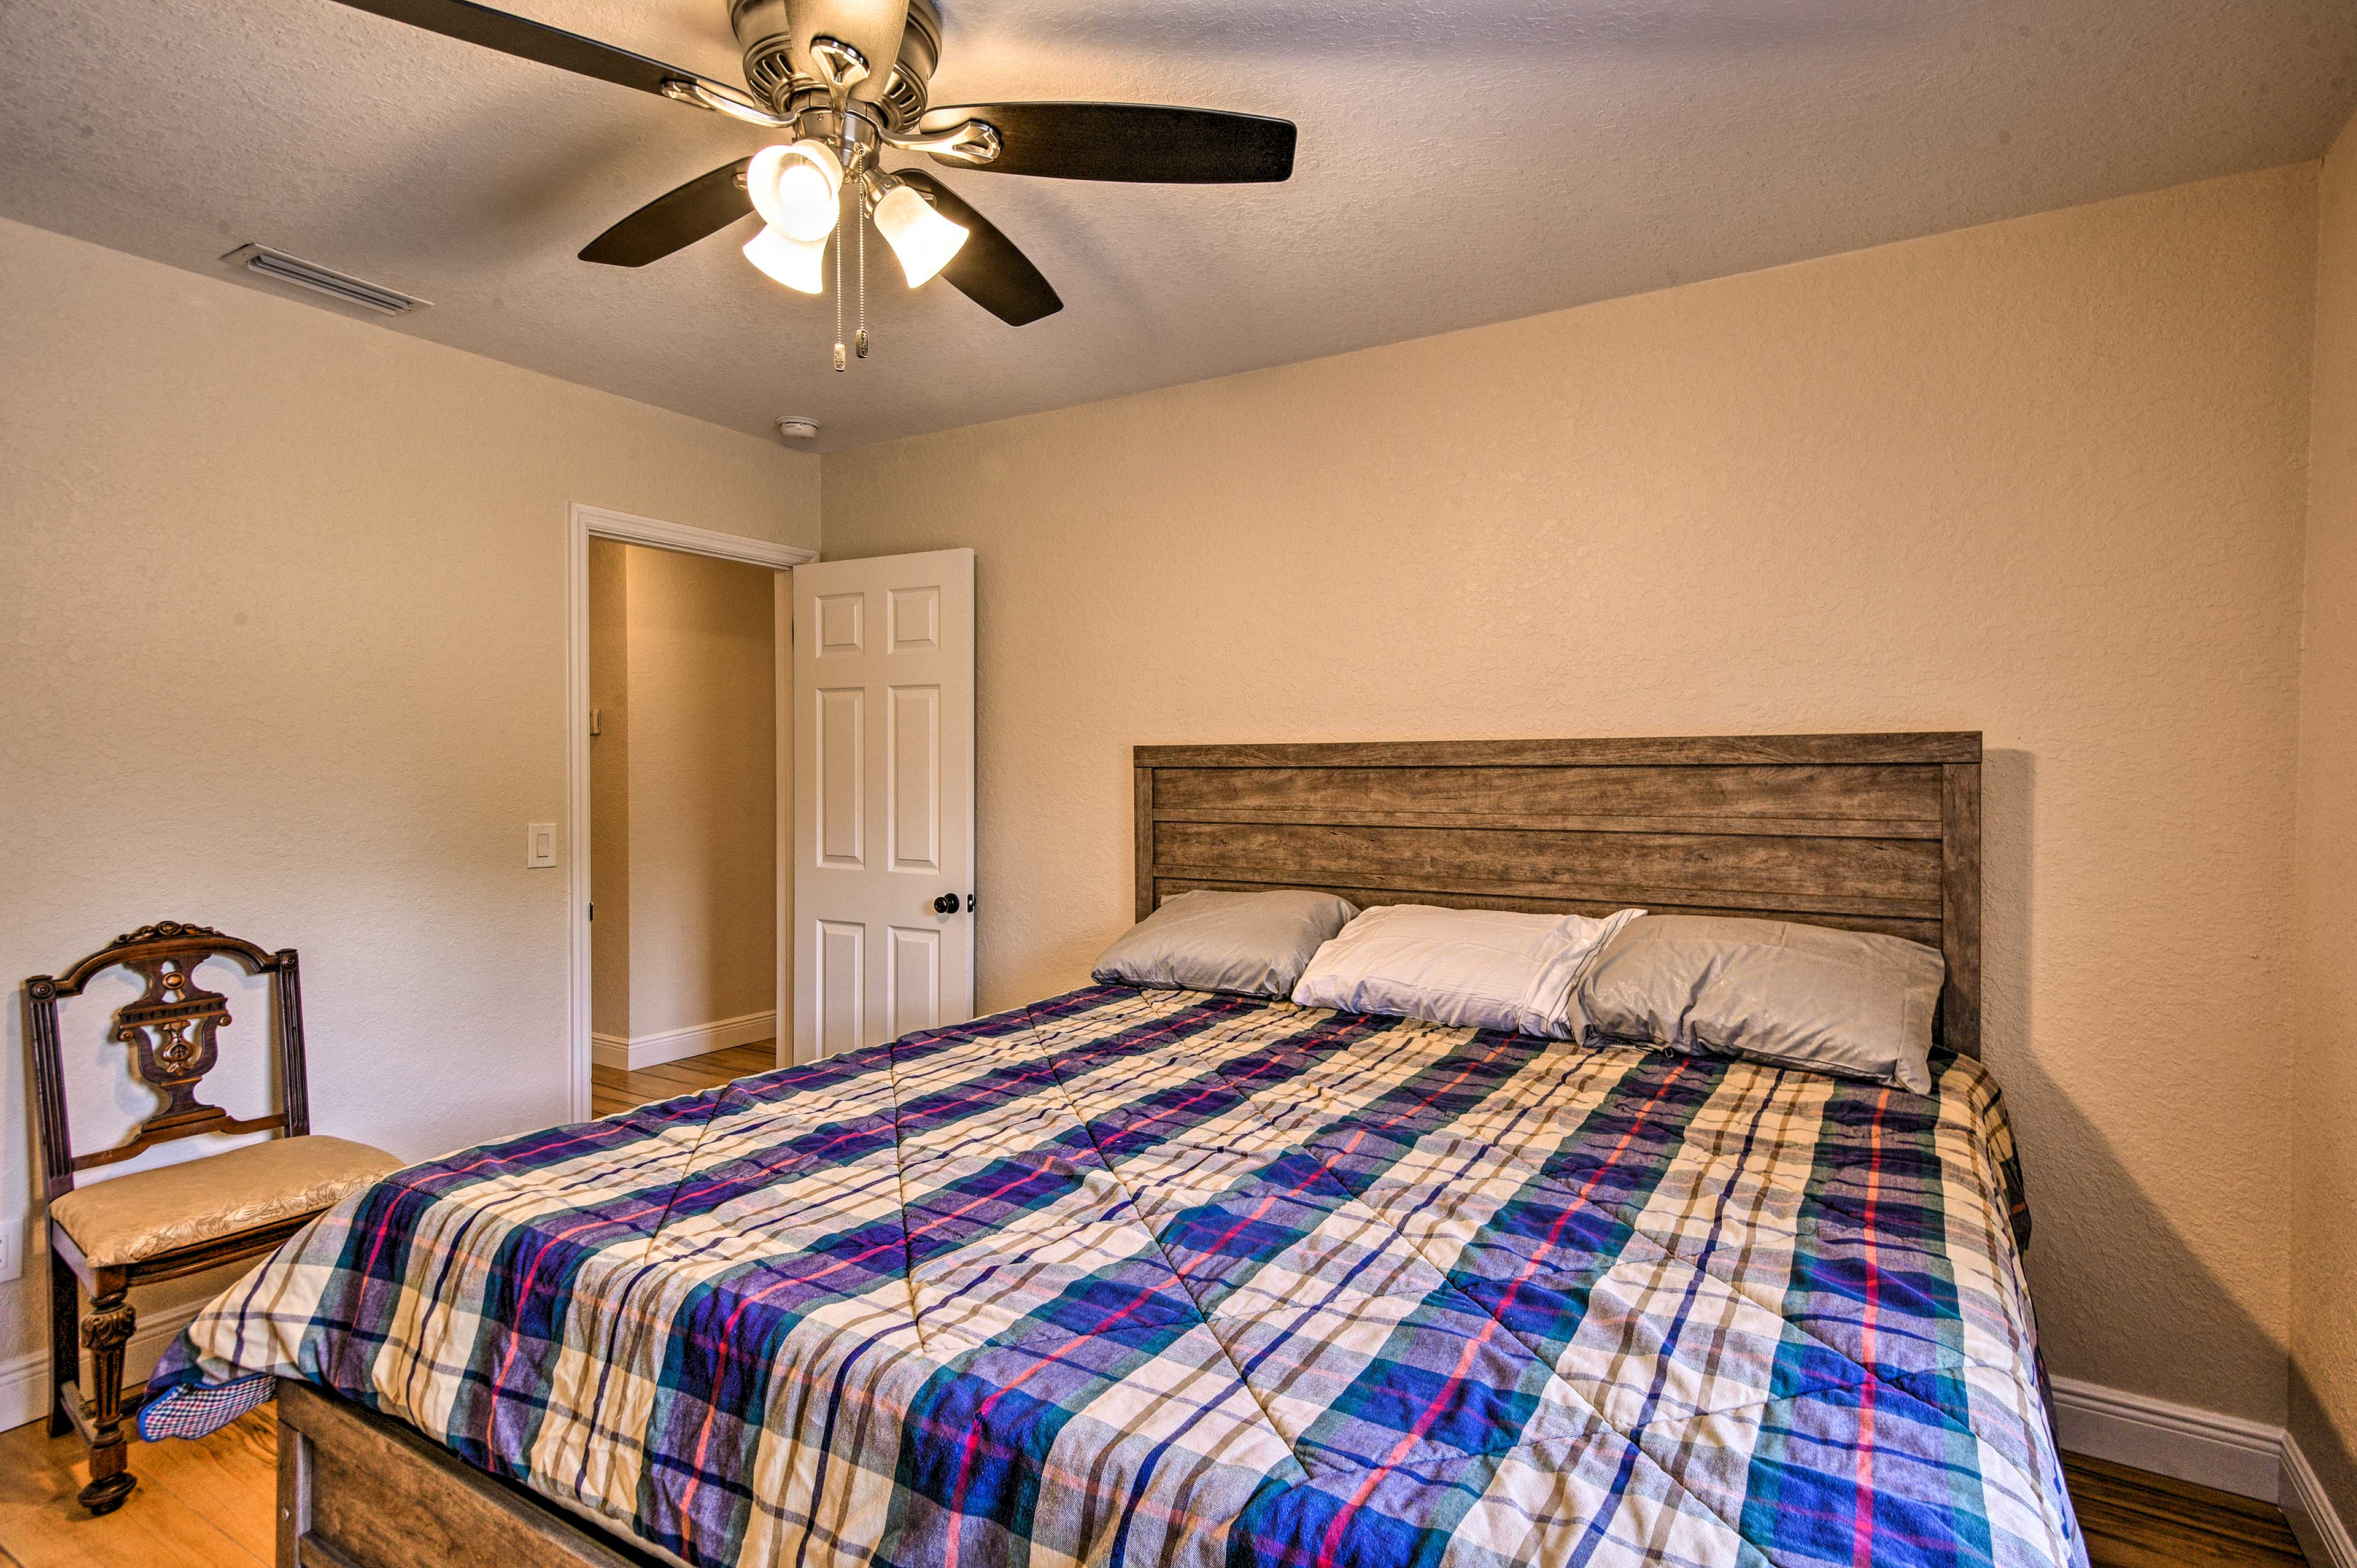 Sleep is sure to come easy no matter which lovely bedroom you choose!